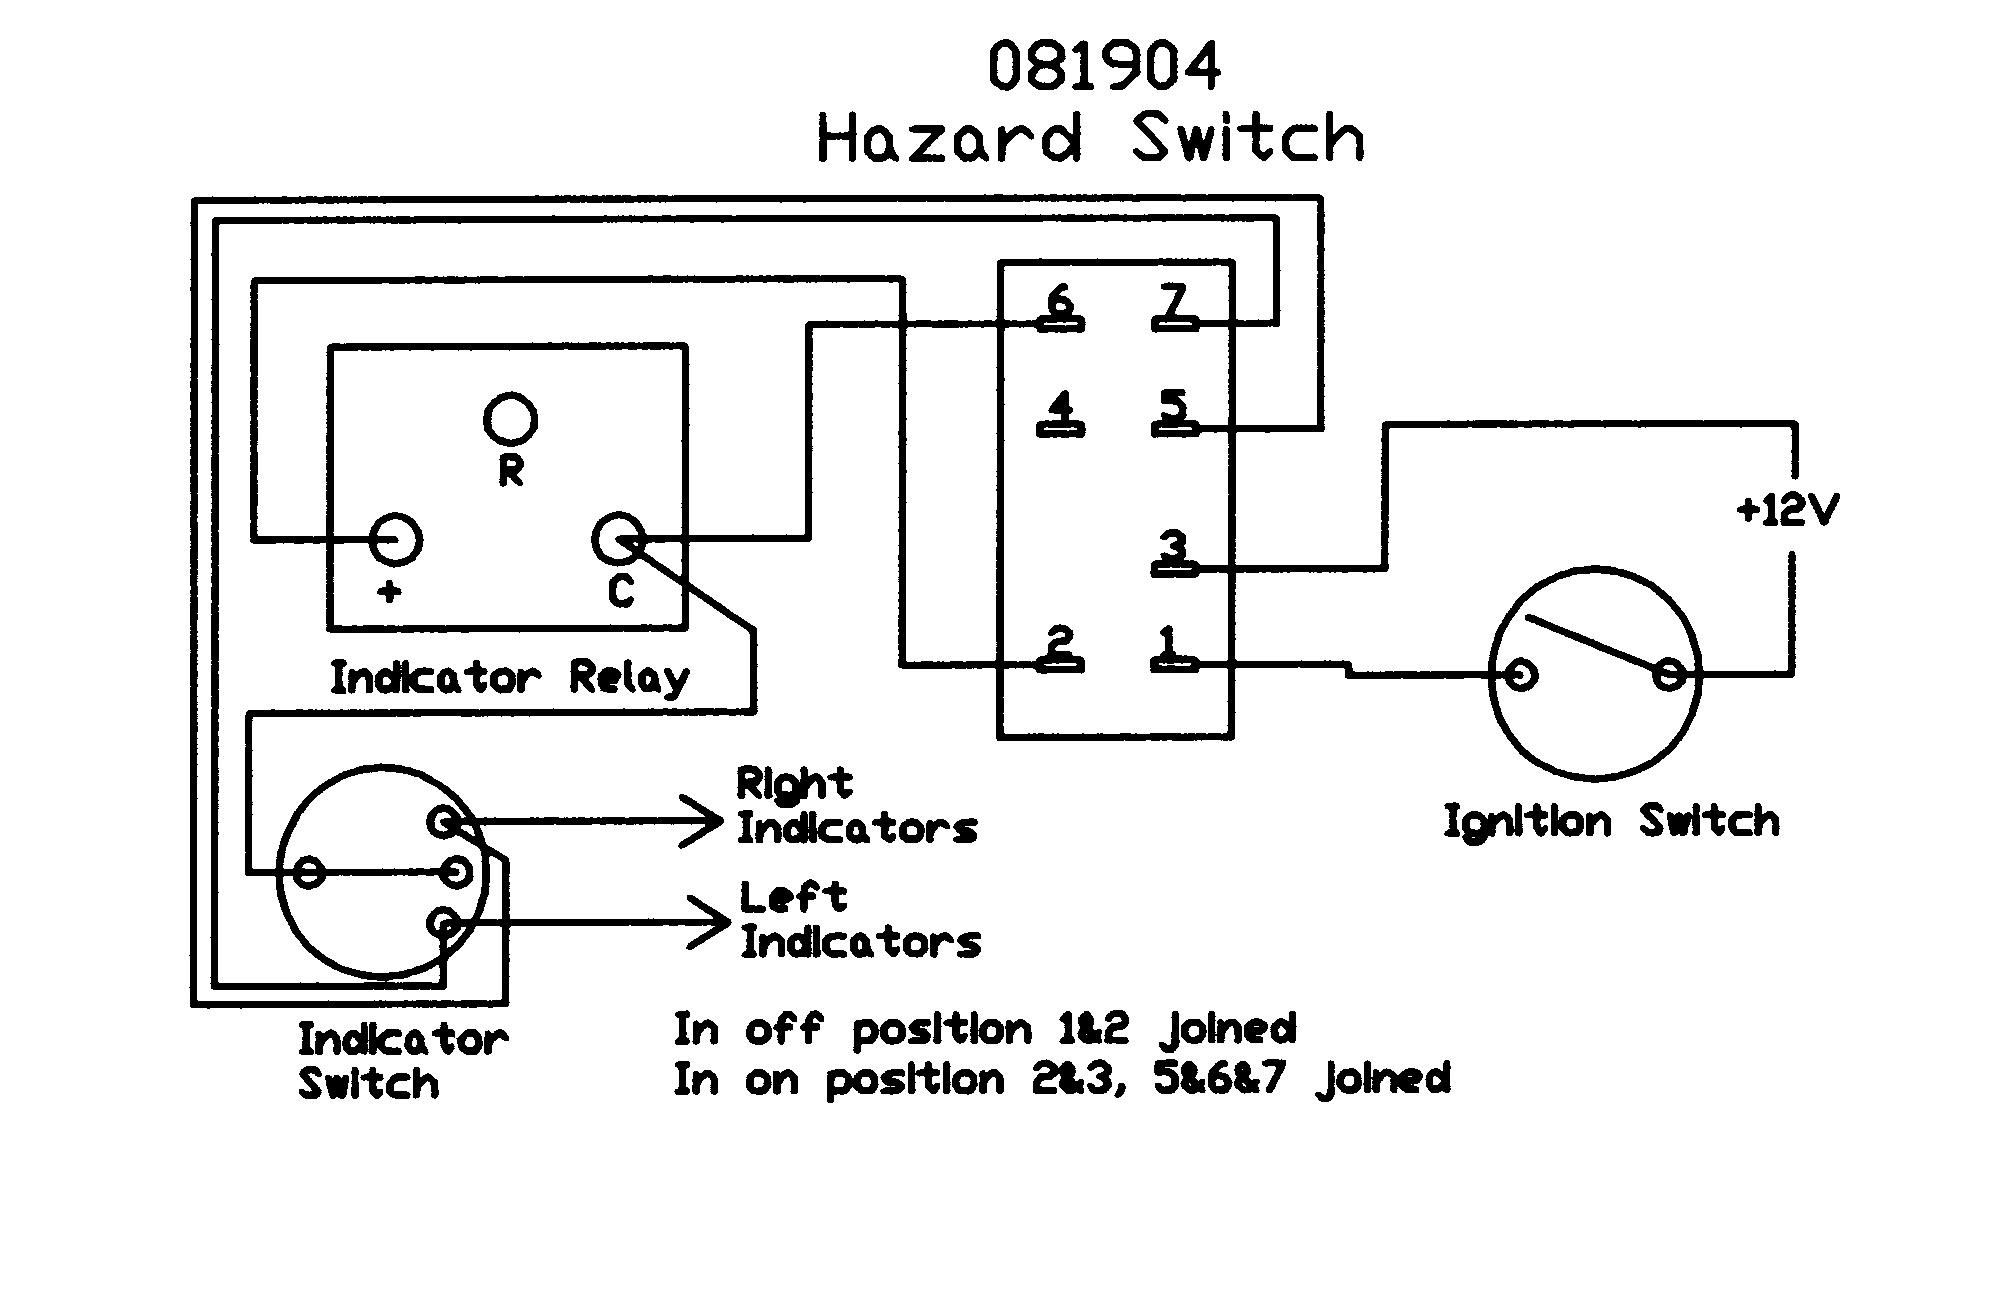 Switch Diagram Wiring : Hazard switch rocker